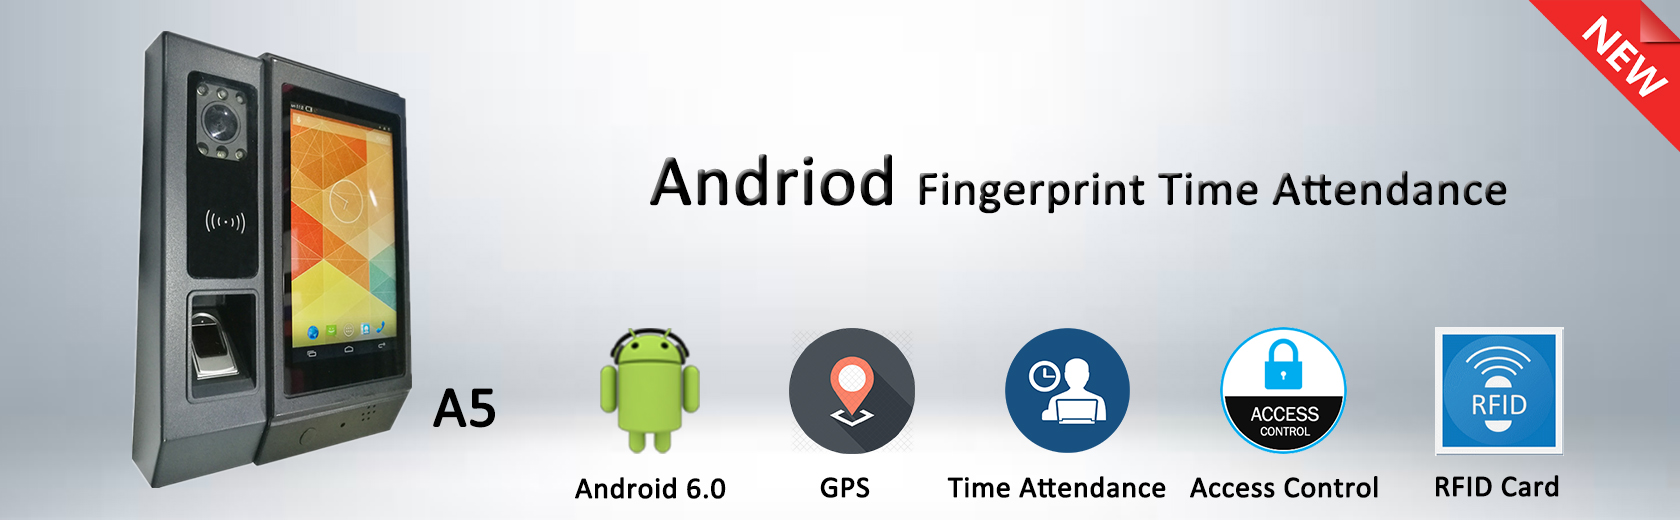 Android Fingerprint Time Attendance